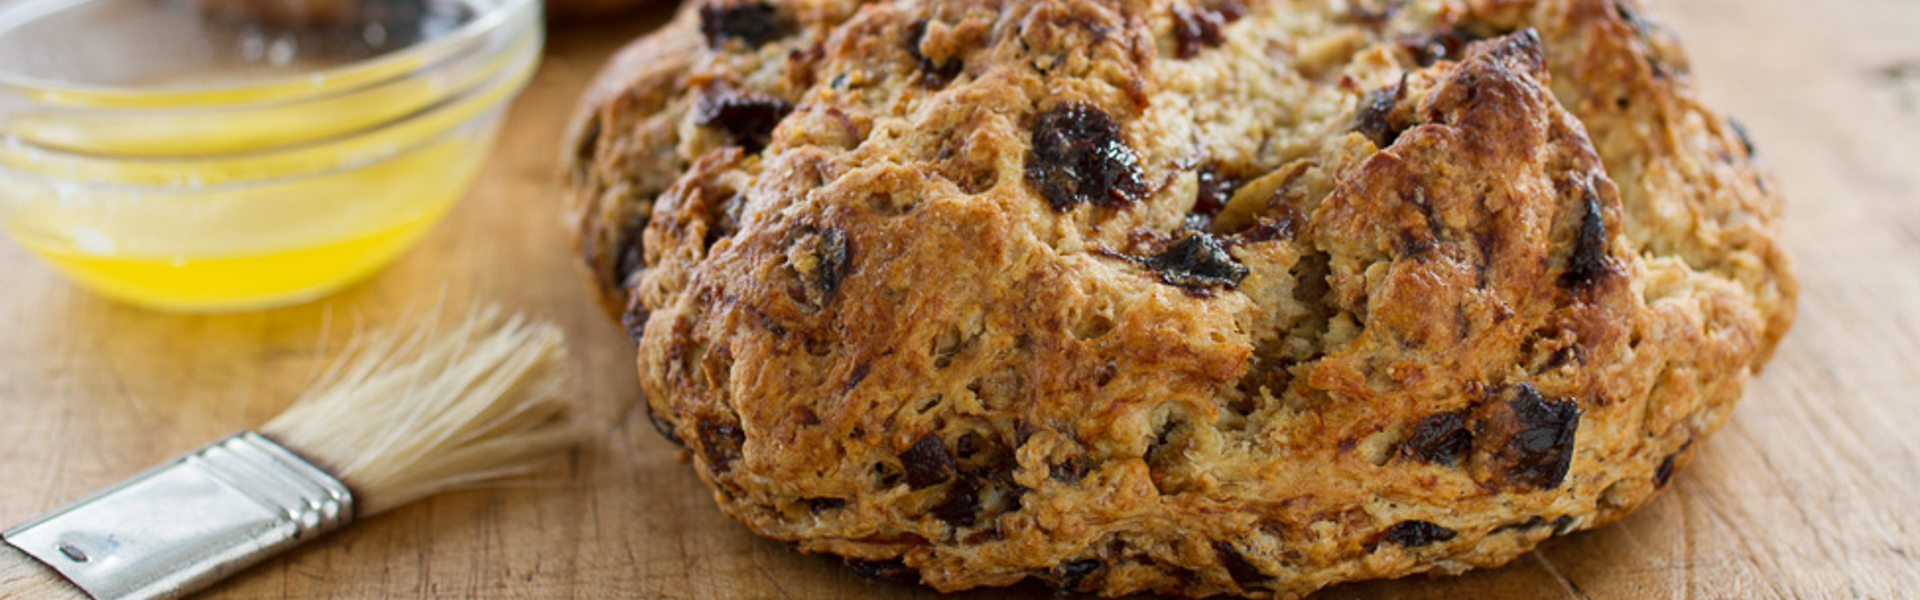 <p>Diced Prunes soaked in tea adds a new flavor dimension to classic Irish-American soda bread. The tannins in the tea draw out the molasses flavor in the prunes. Serve this bread with jam and butter or Cheddar and honey.</p>